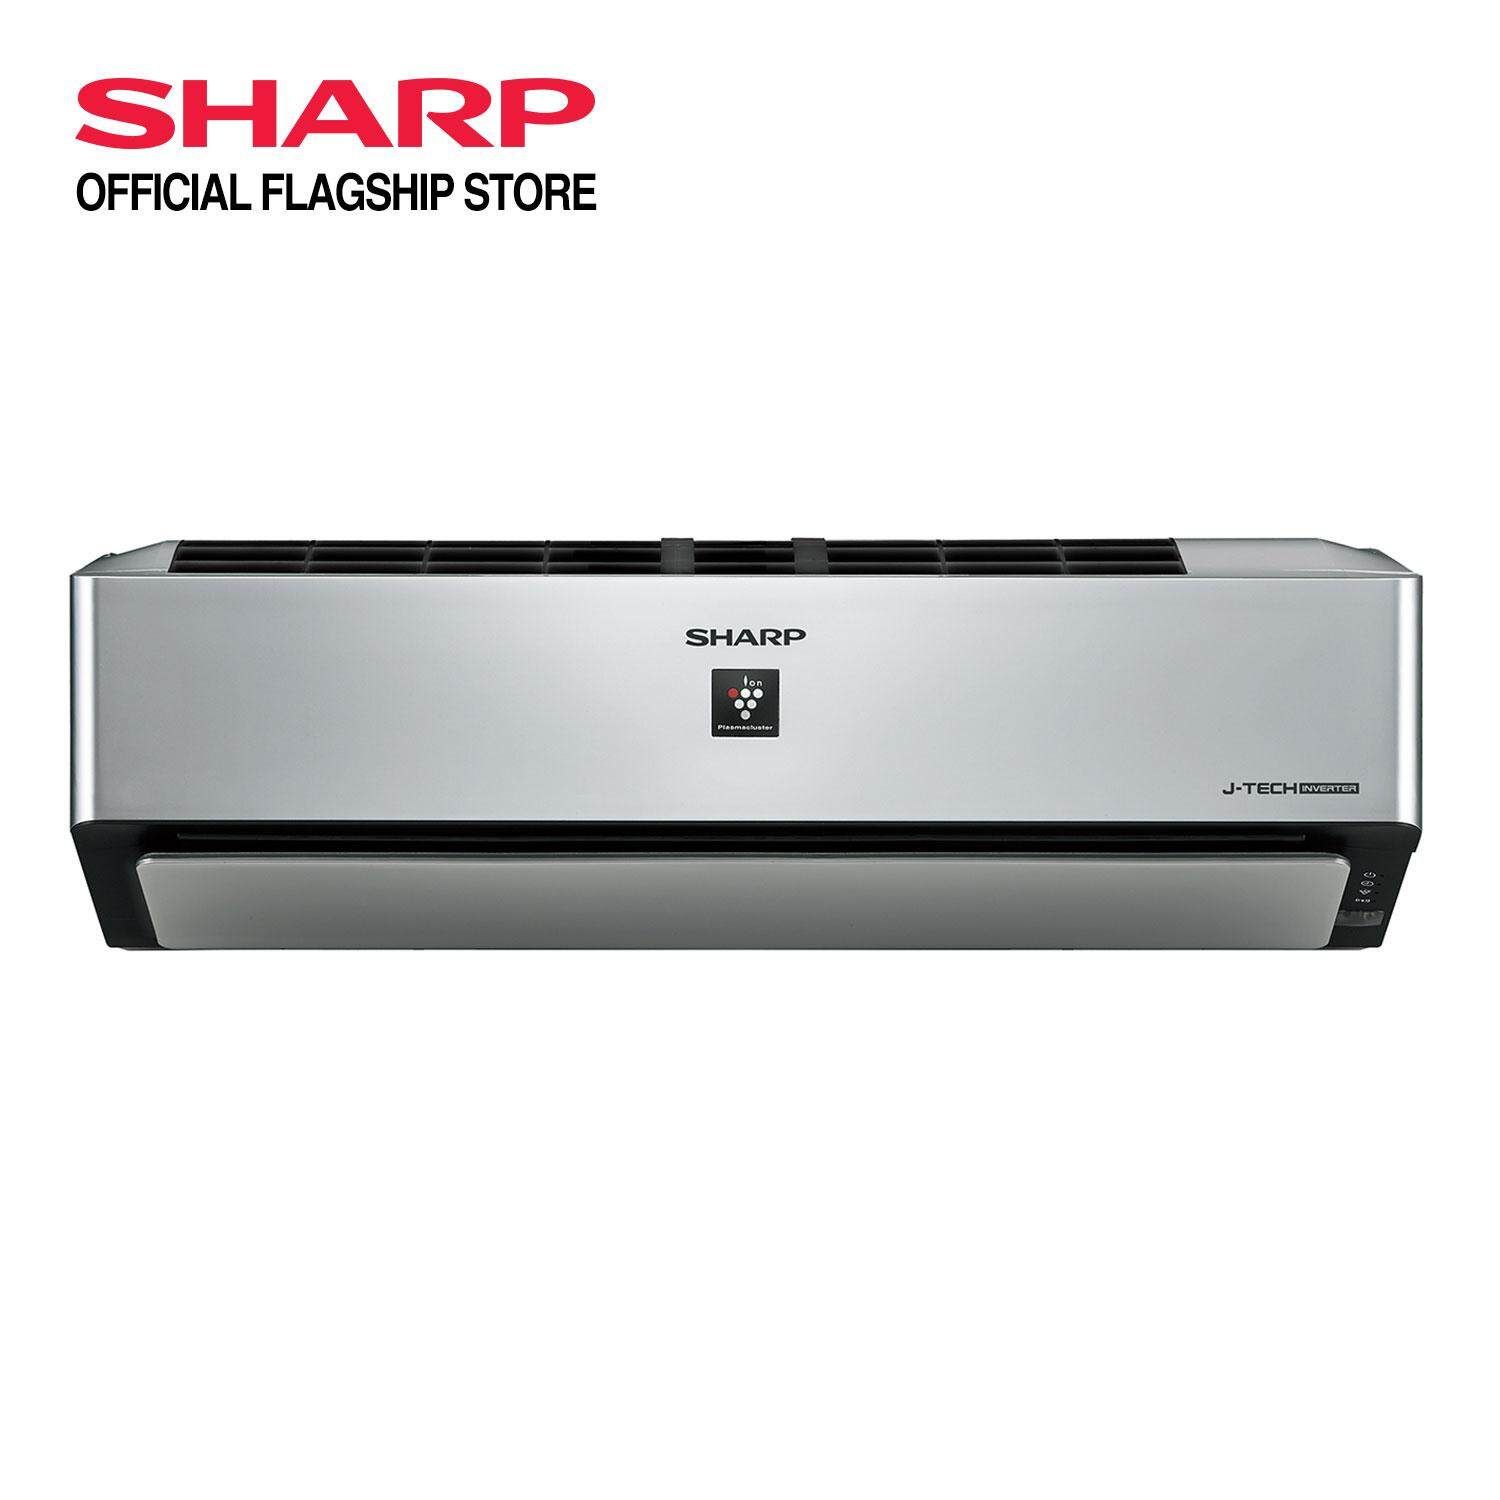 SHARP Air-Cond AHXP10VXD 1.0HP AIoT Air-Cond Plasmacluster Ion (PCI) (Comes with free gift)